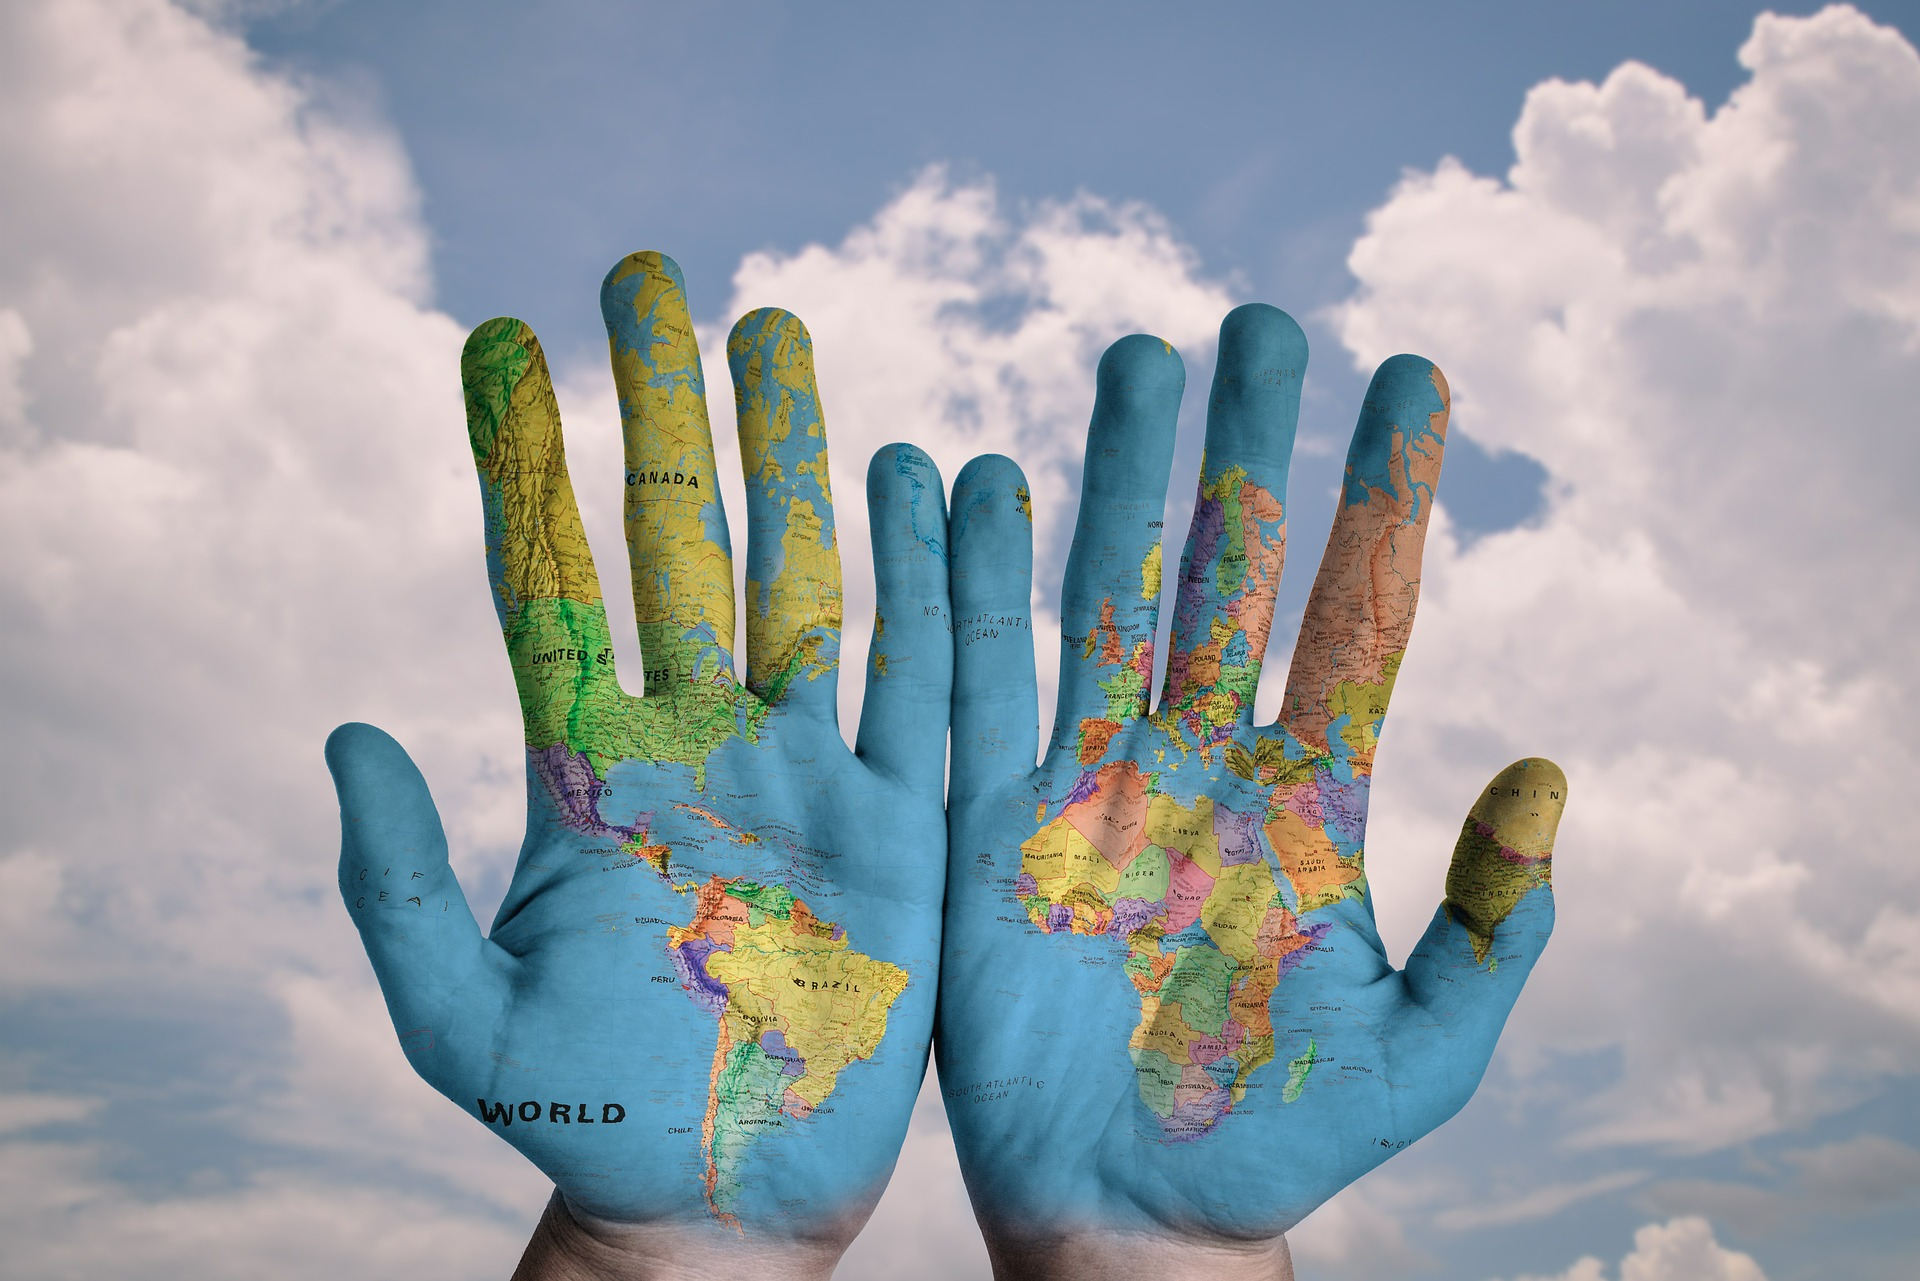 Background with clouds and blue sky, two hands with the world map on them